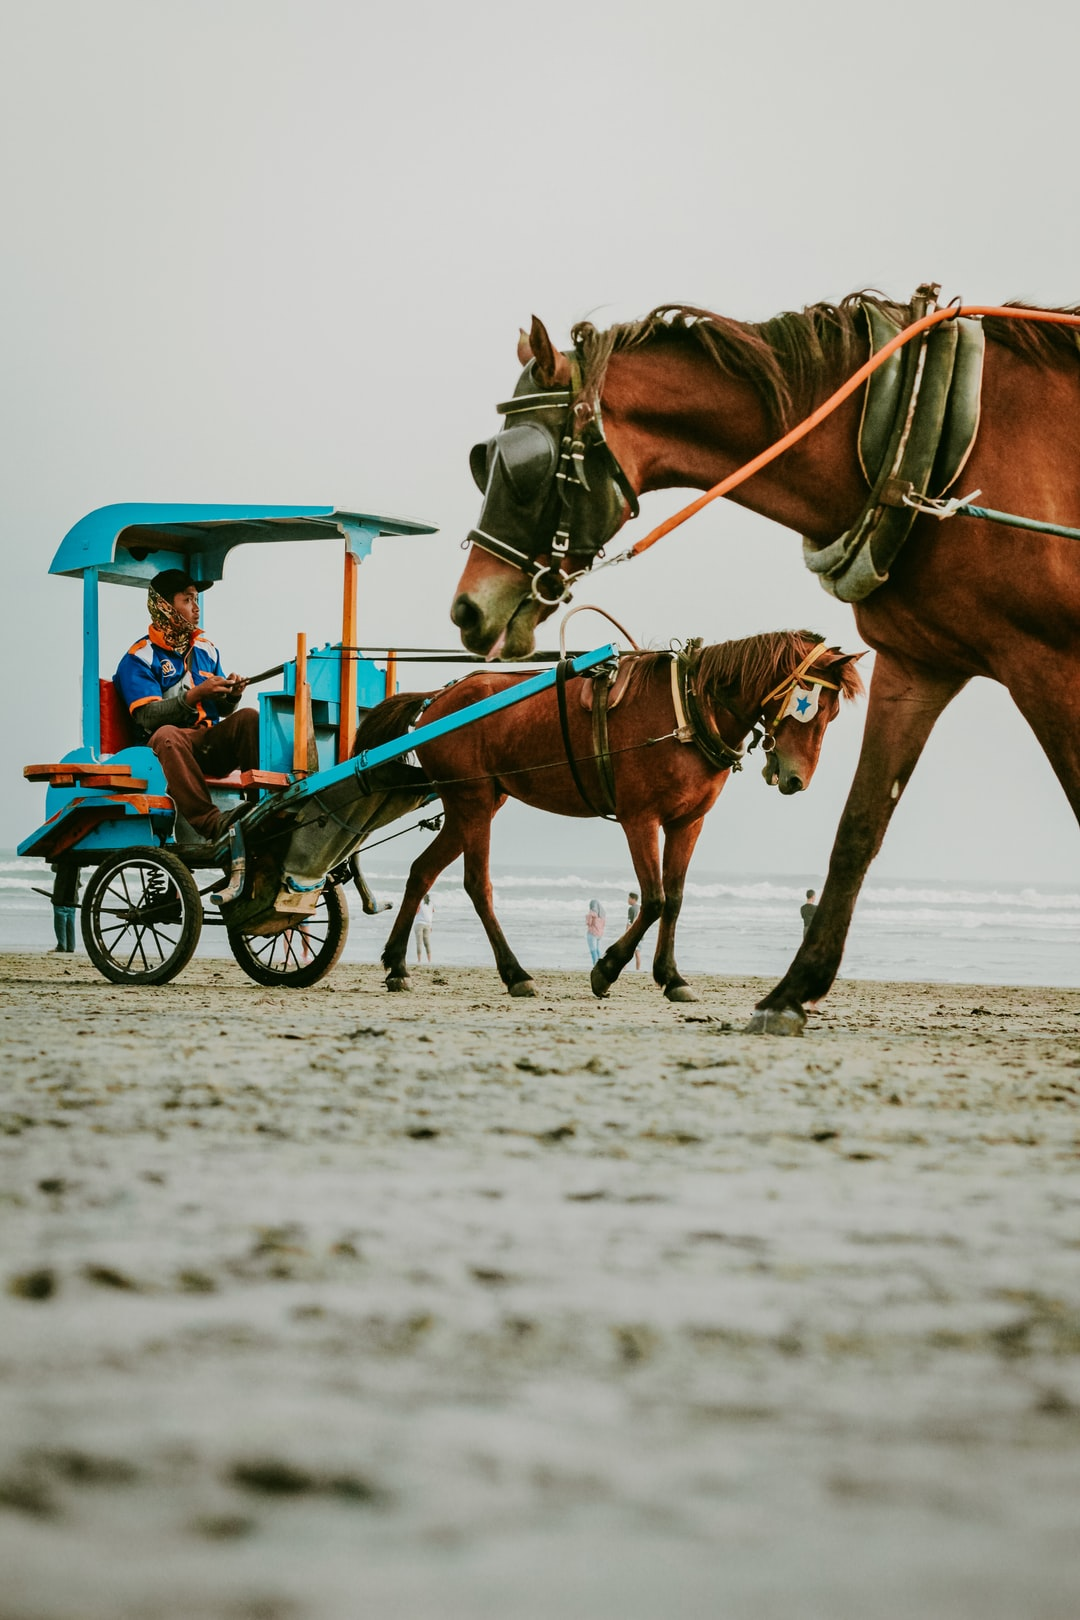 On the beach of Parang Tritis You can find many horses and other unique and traditional transportation, and make this place more interesting and memorable after visiting here, come visit the island of Java in Indonesia.